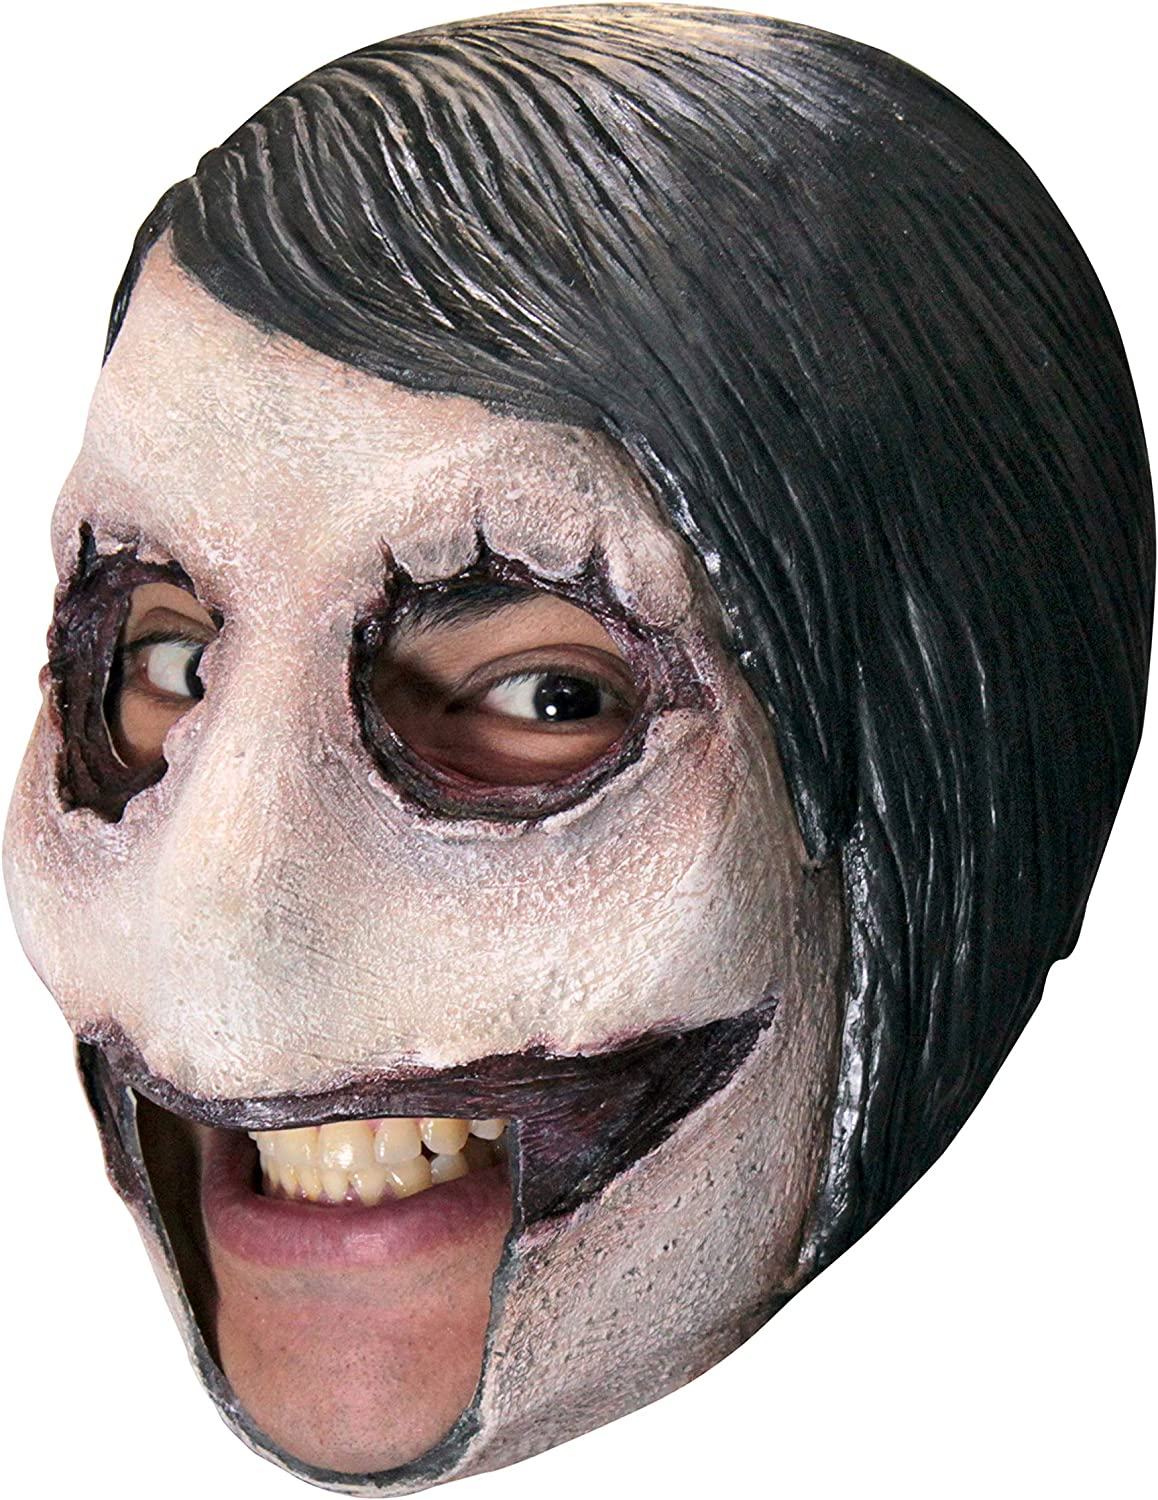 Evil Clown Frontal Face Mask Crazy Killer Halloween Adult Costume Accessory